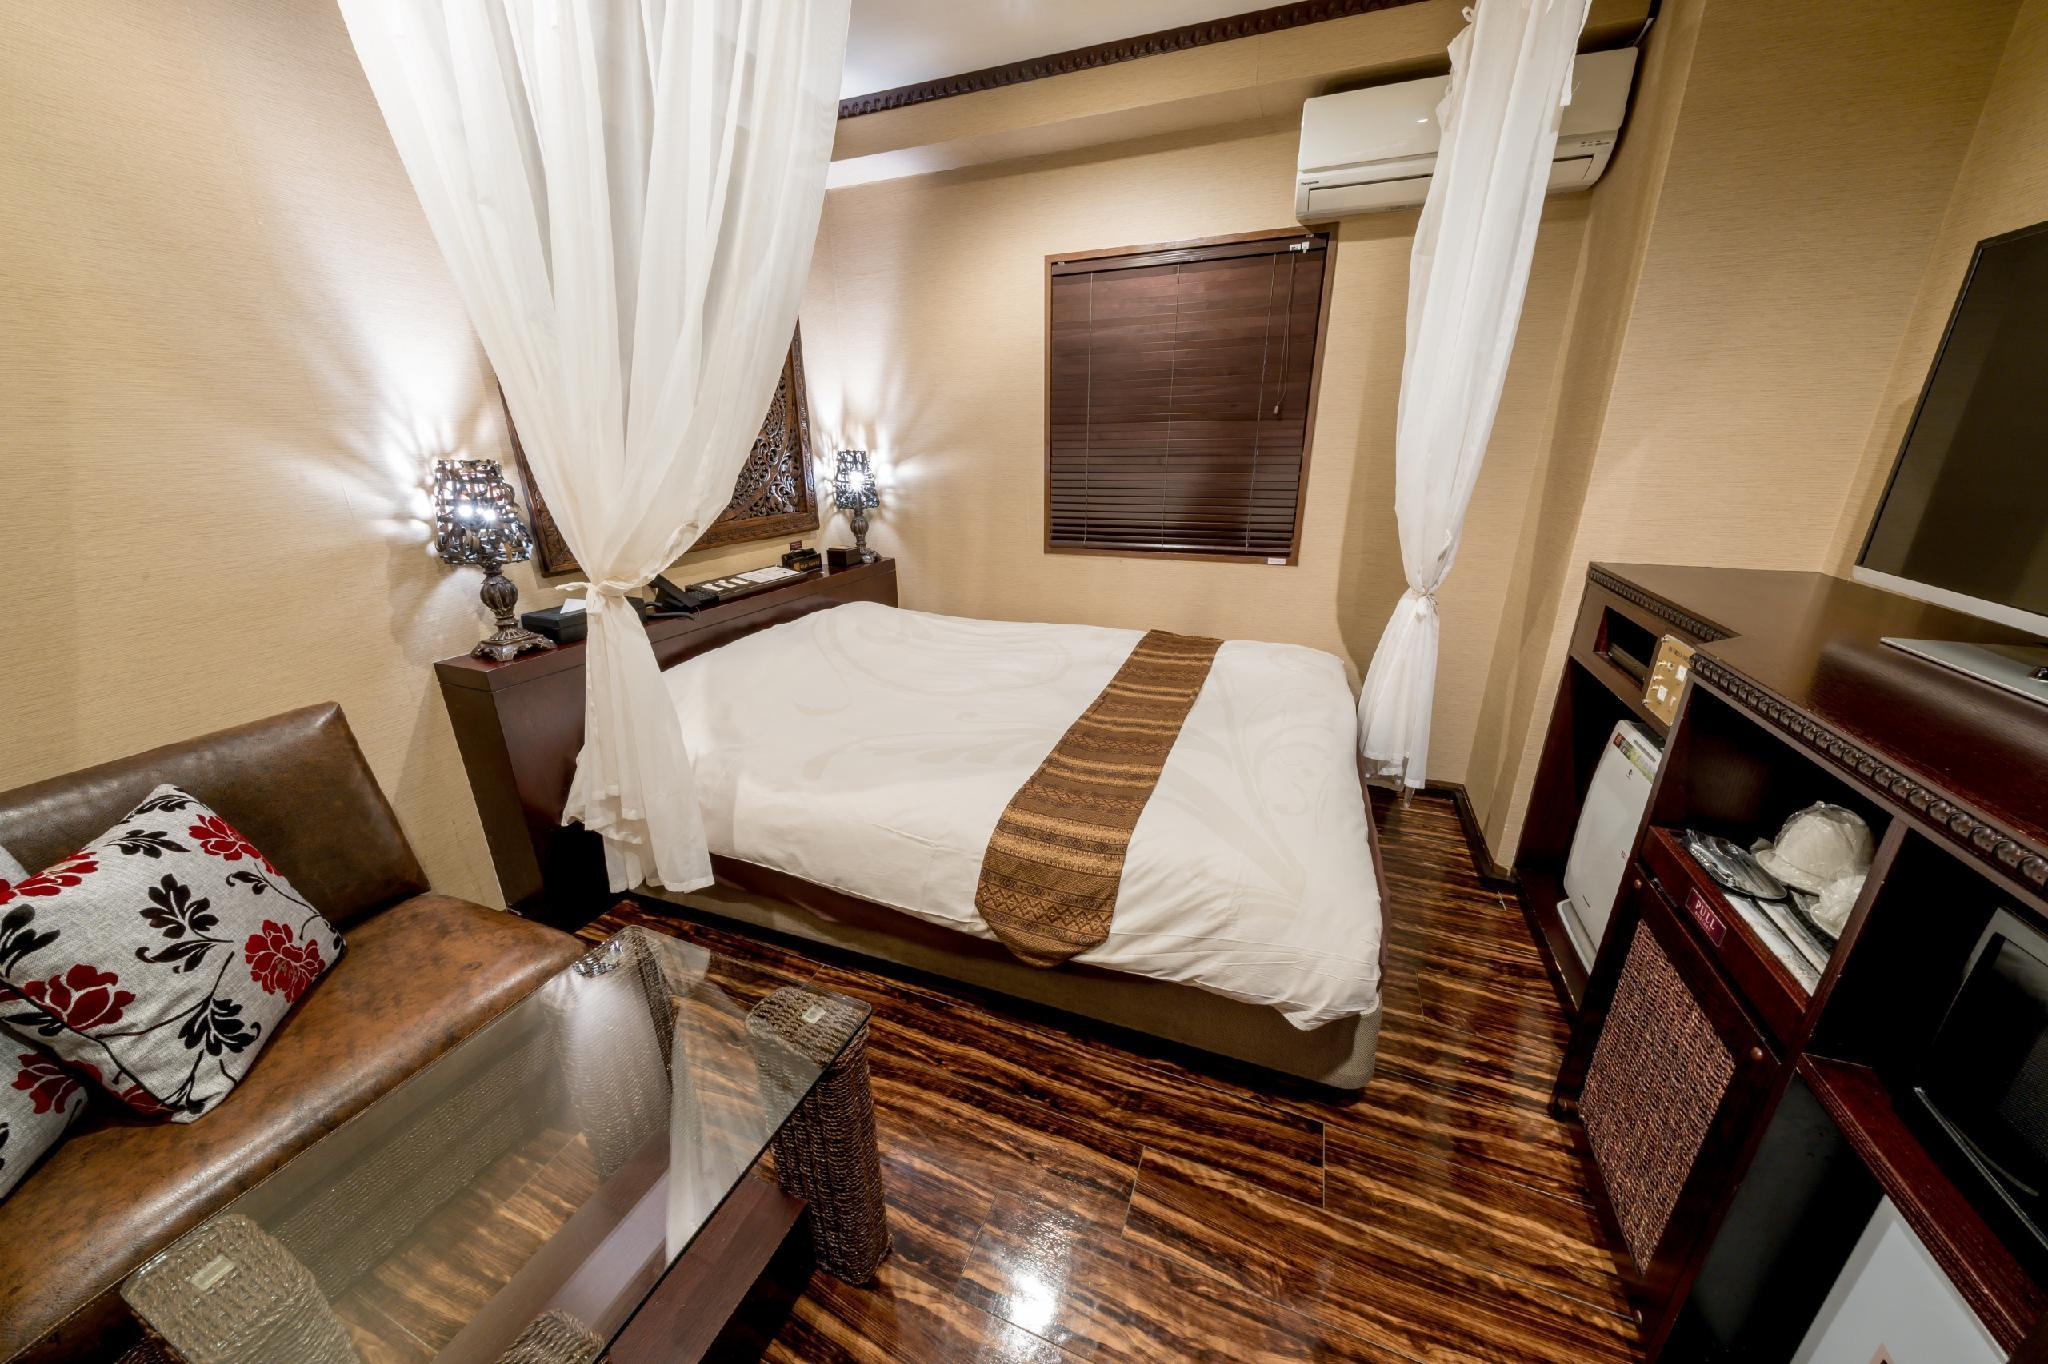 Kamar Standard Queen Bebas Asap Rokok (Standard Queen Room Non-Smoking)